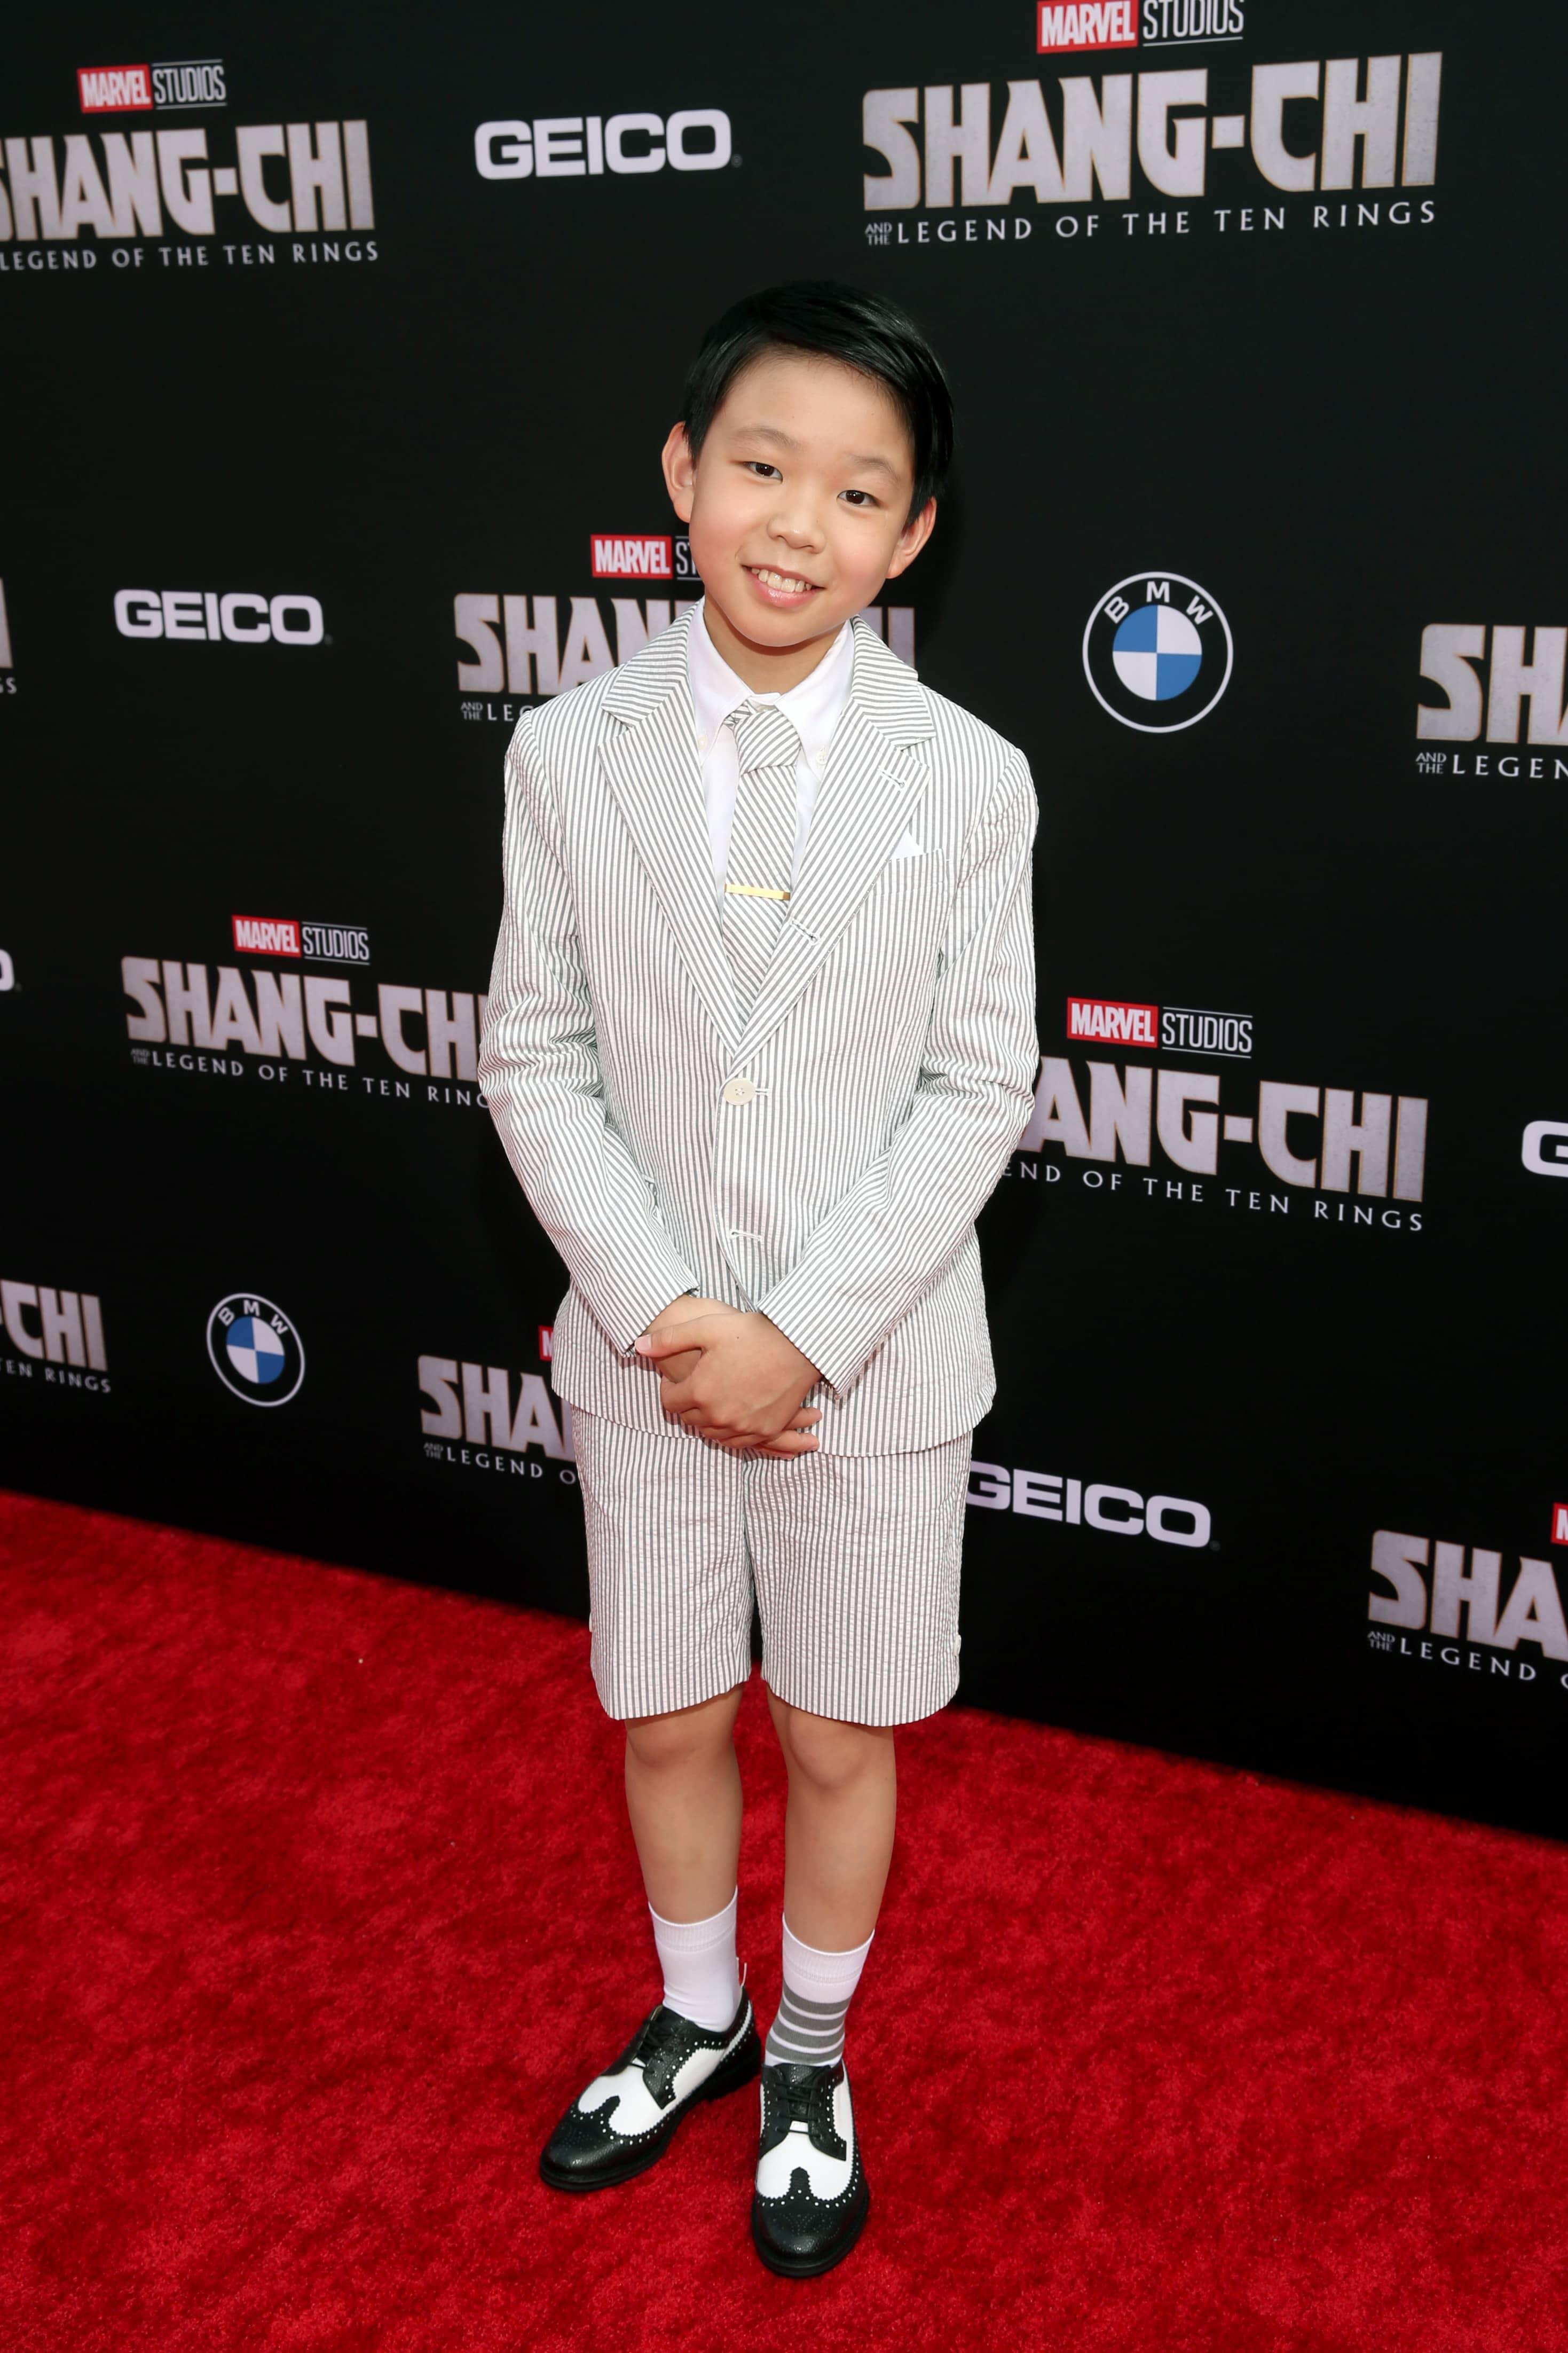 'Shang-Chi and the Legend of the Ten Rings' World Premiere